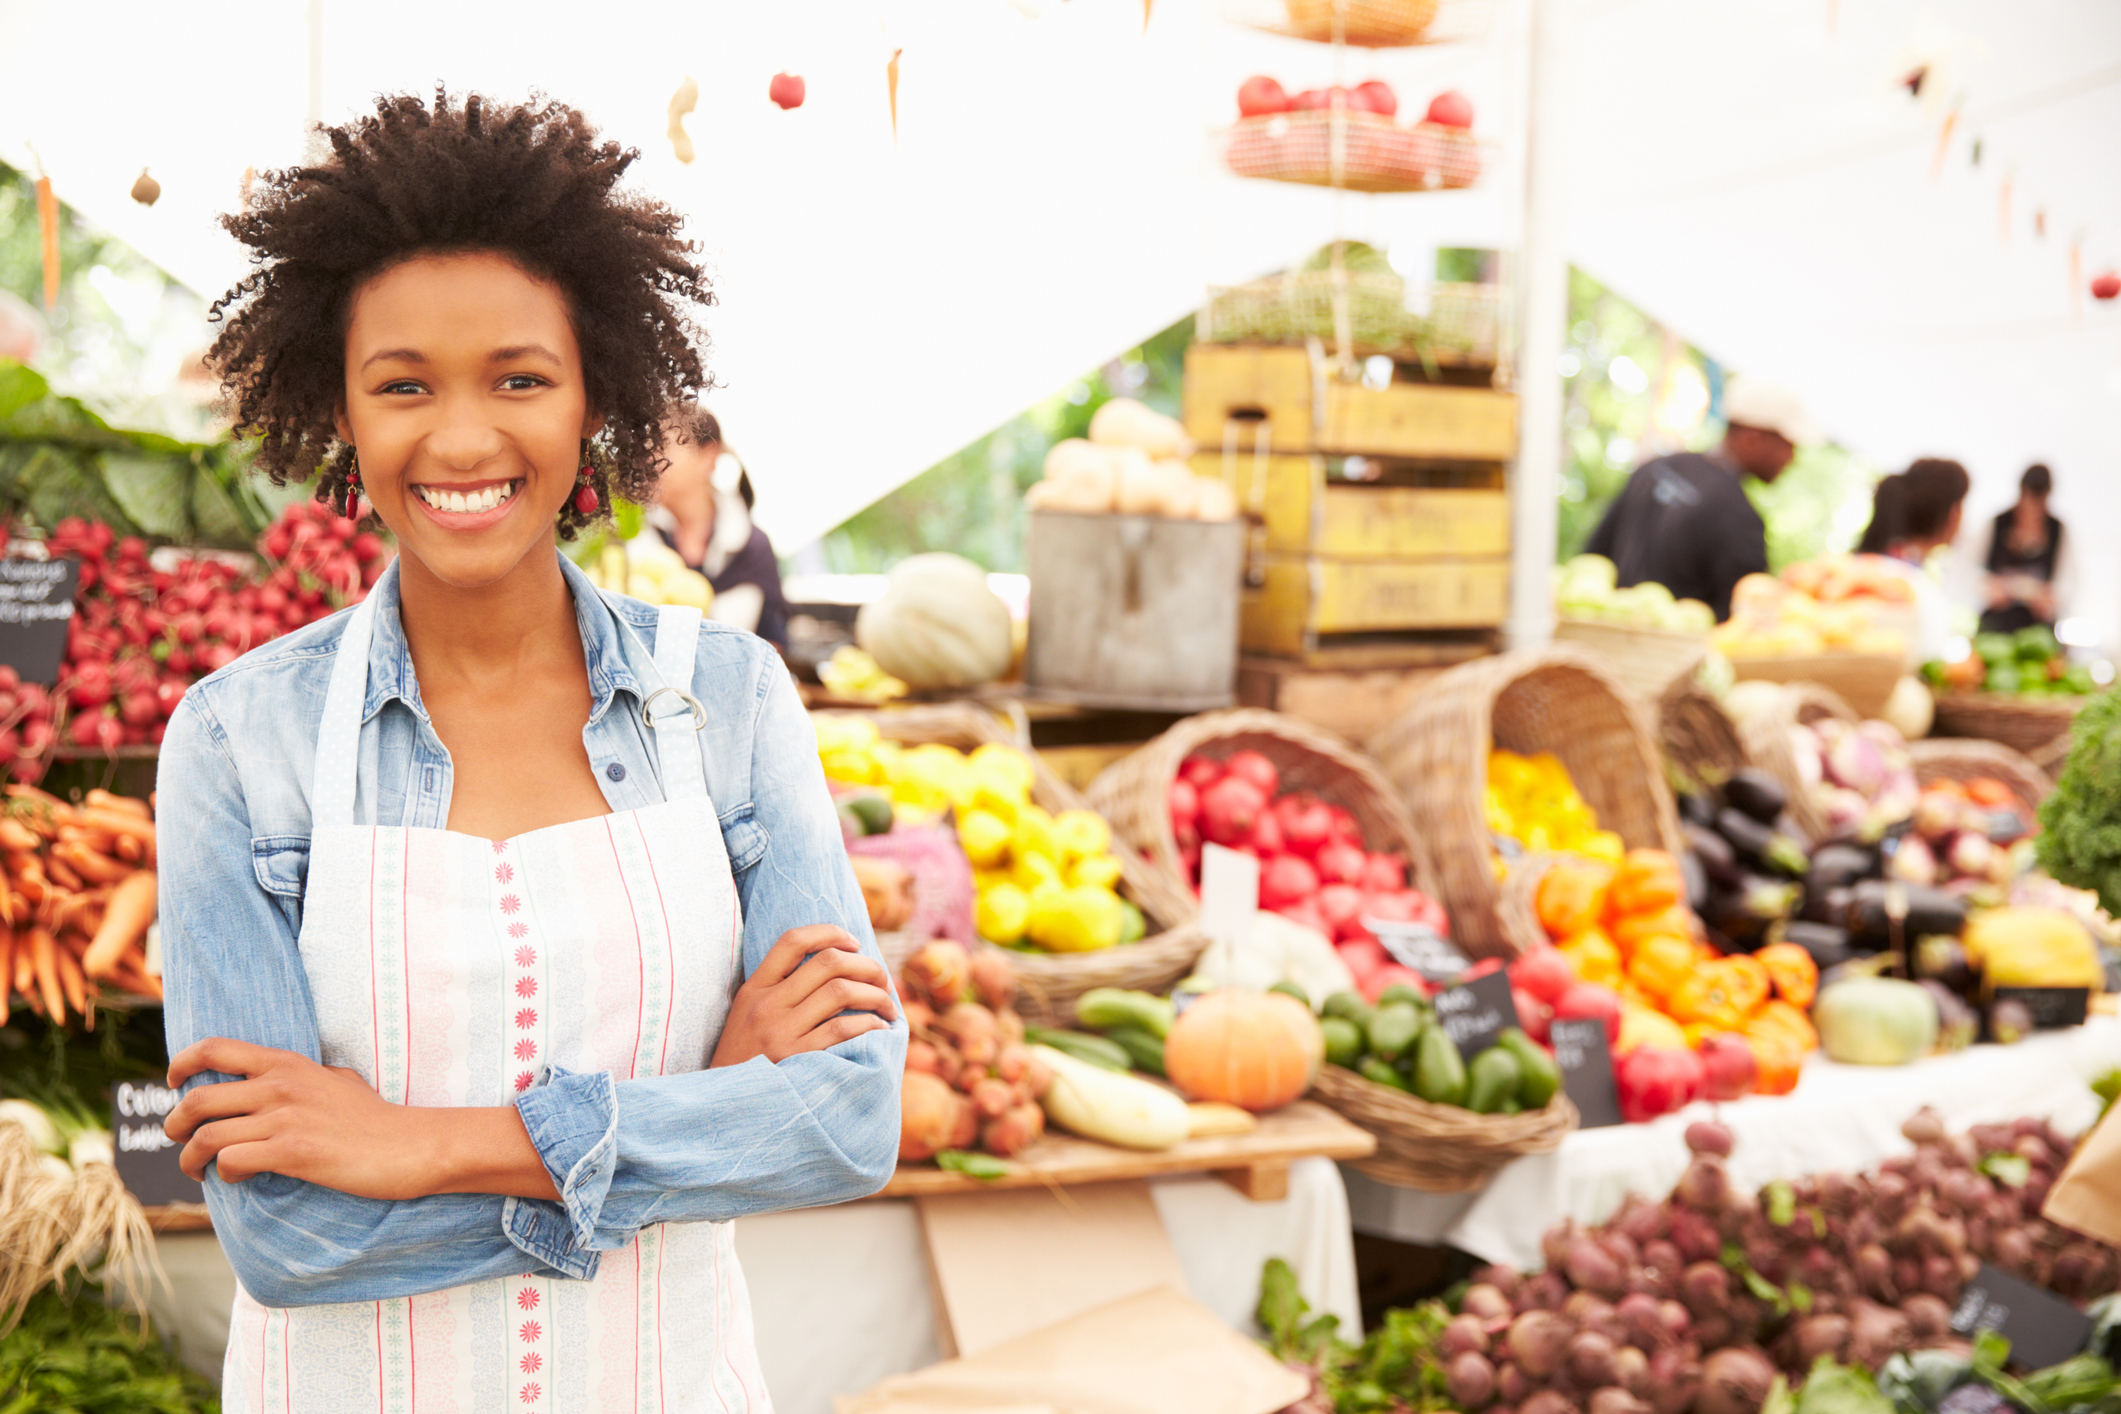 How to load up on heart-healthy nutrients at your farmer's market